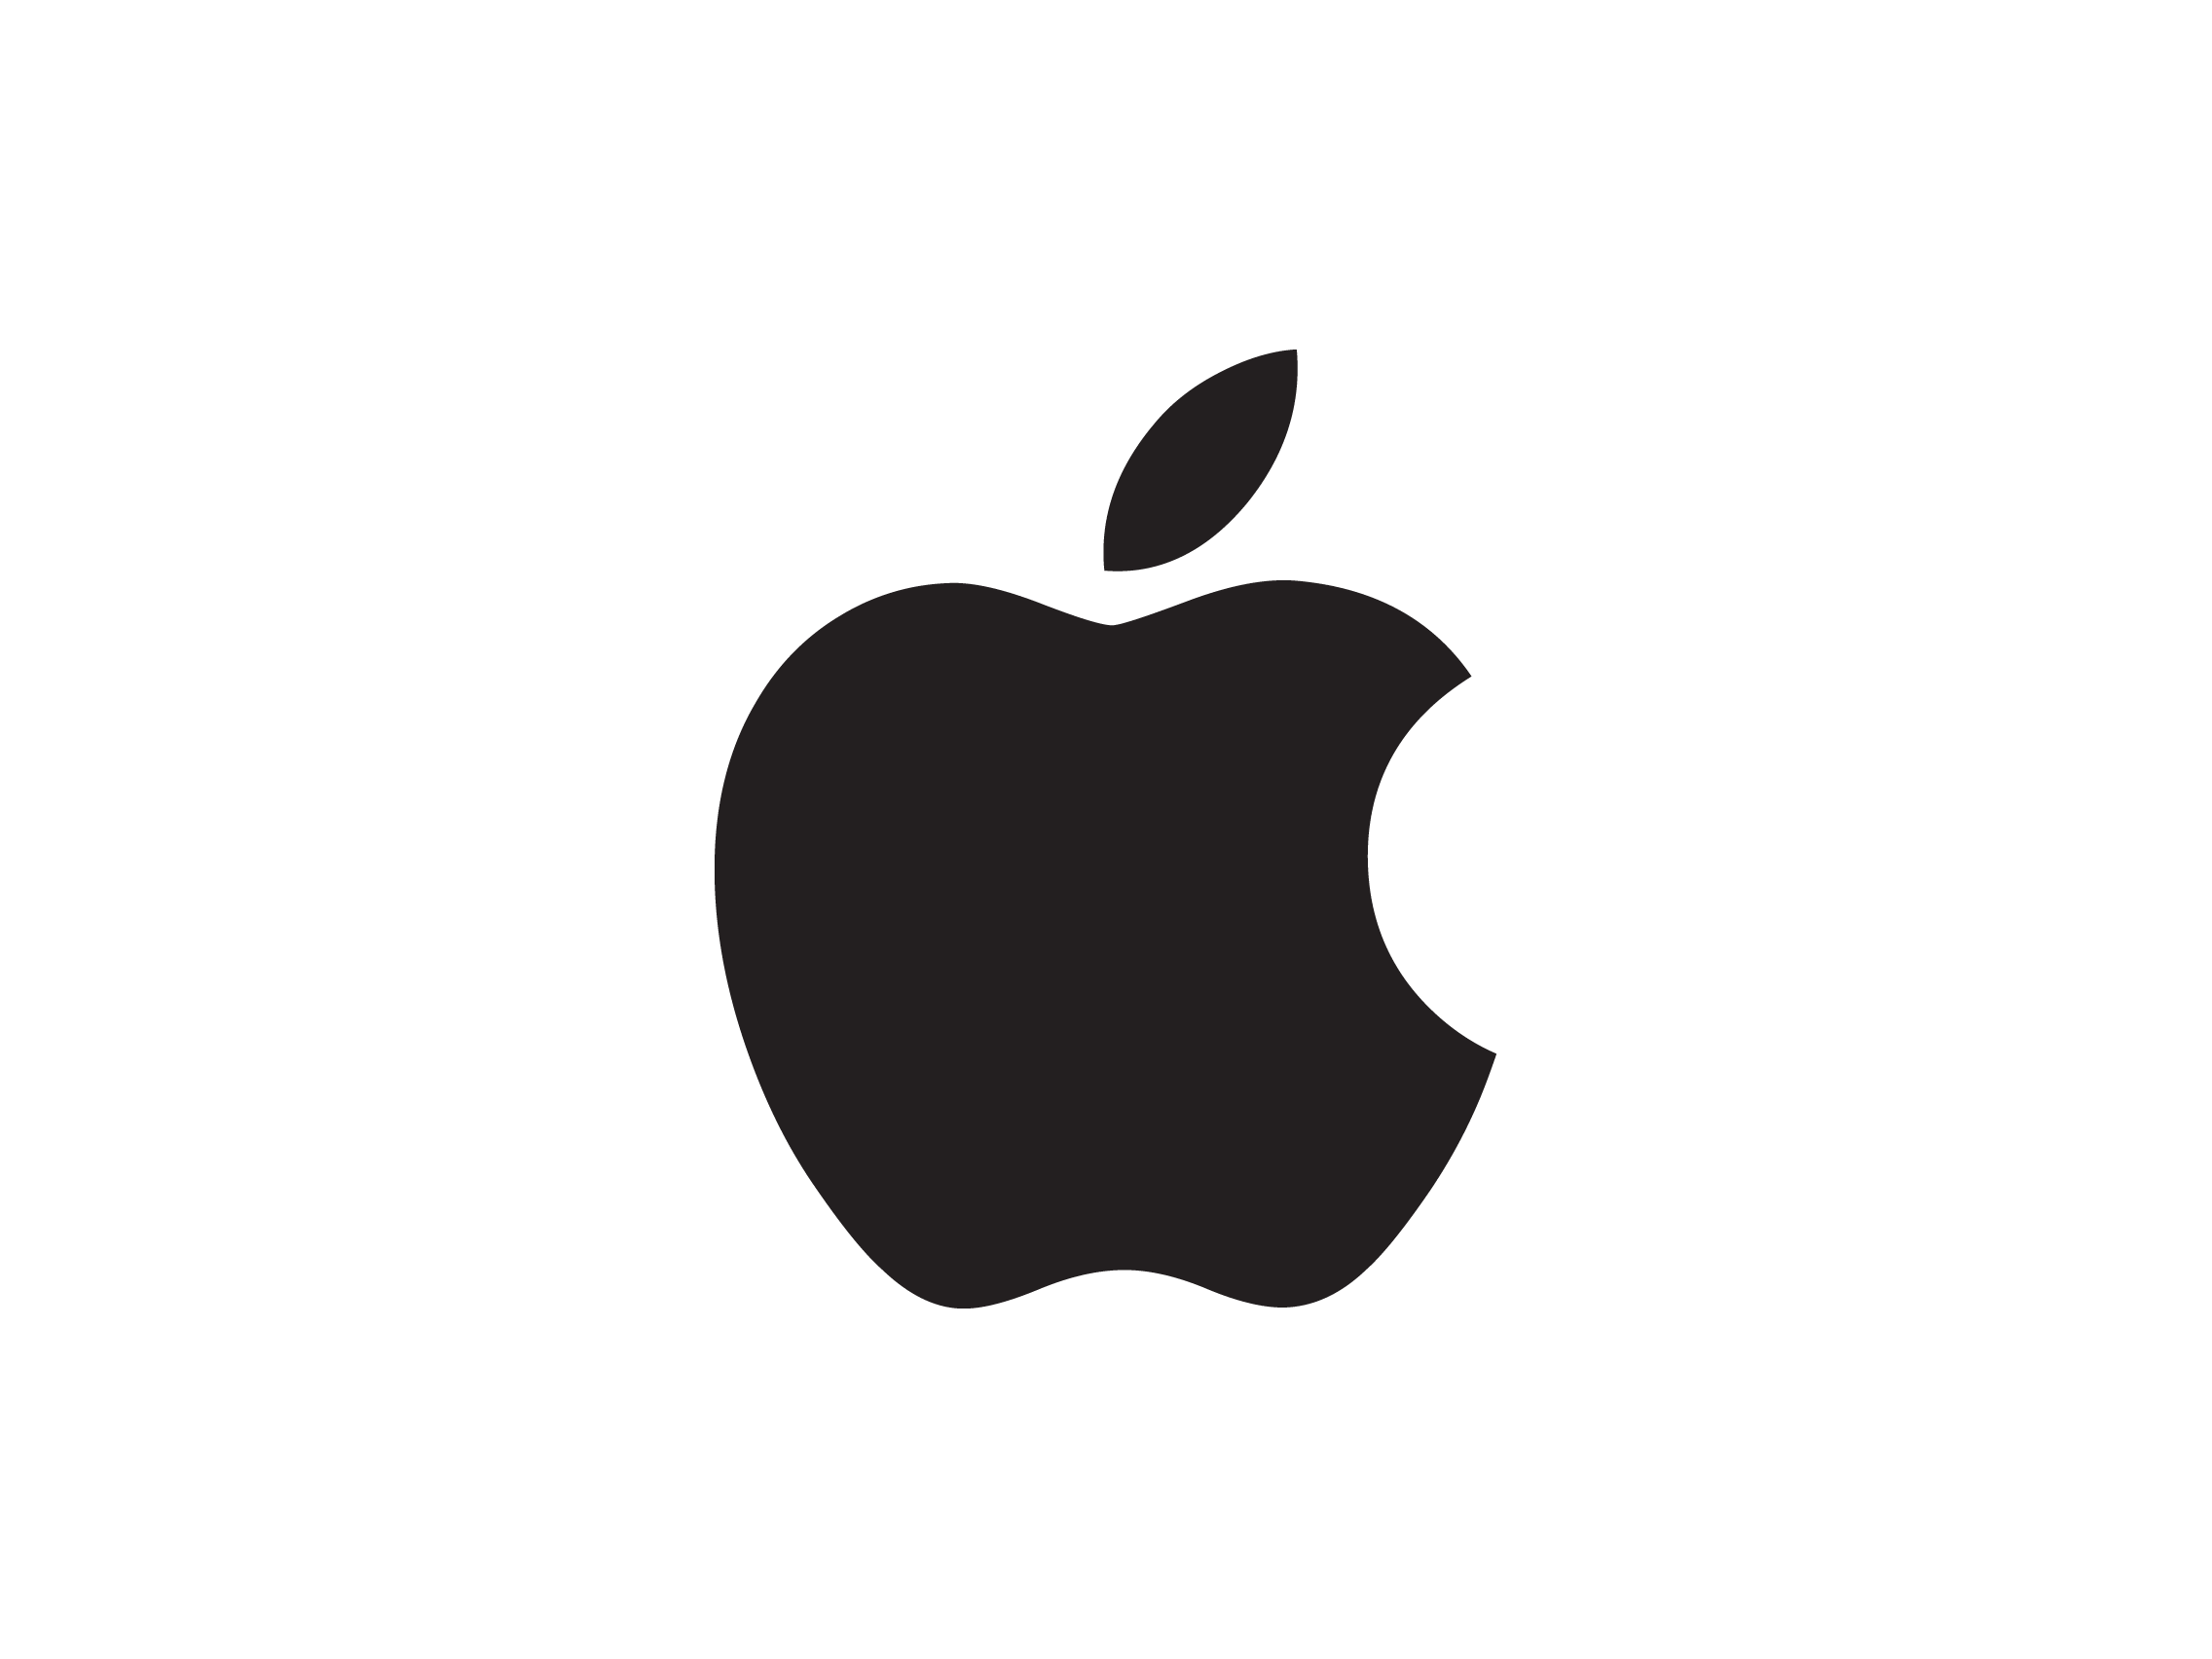 7 Apple .png